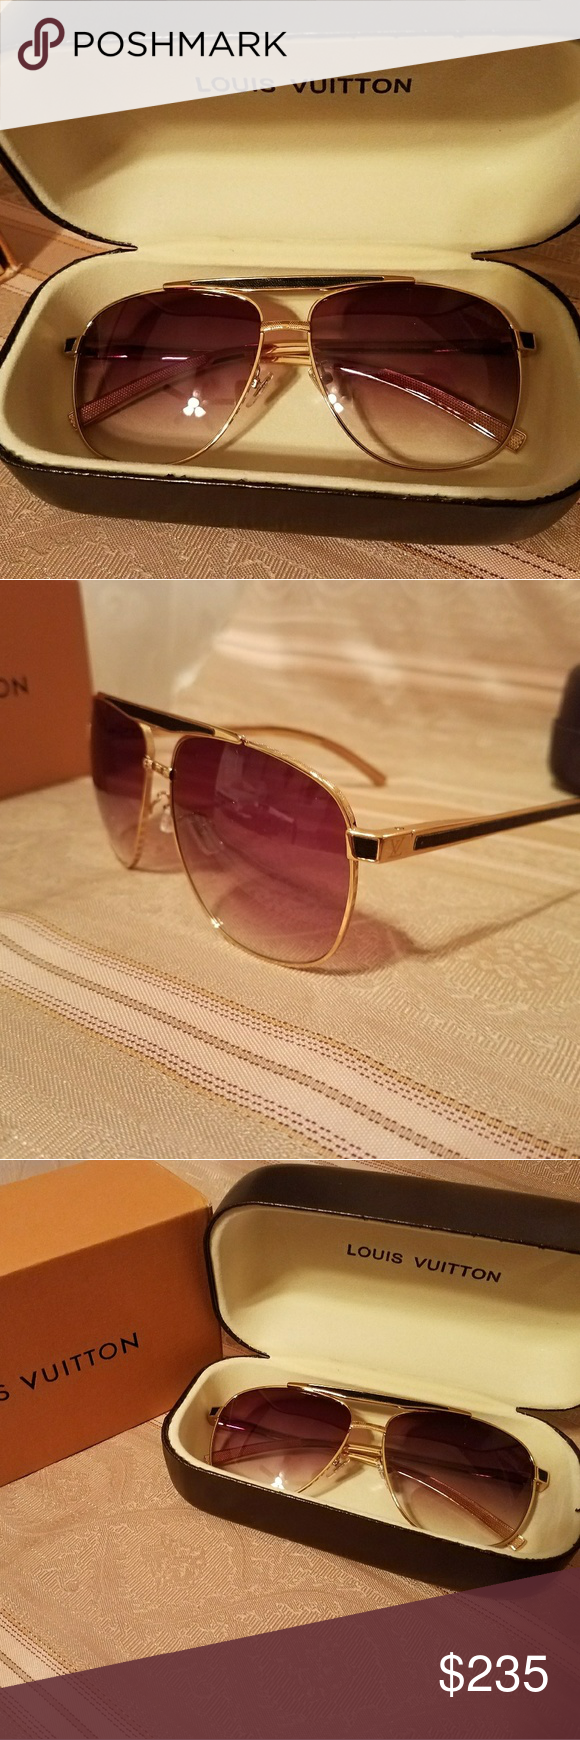 d4725a30c0b LOUIS VUITTON PERSUASION SUNGLASSES Authentic NEW LV Persuasion Sunglasses  Brand New Includes BOX CASE MICROFIBER CLOTH Louis Vuitton Accessories  Sunglasses